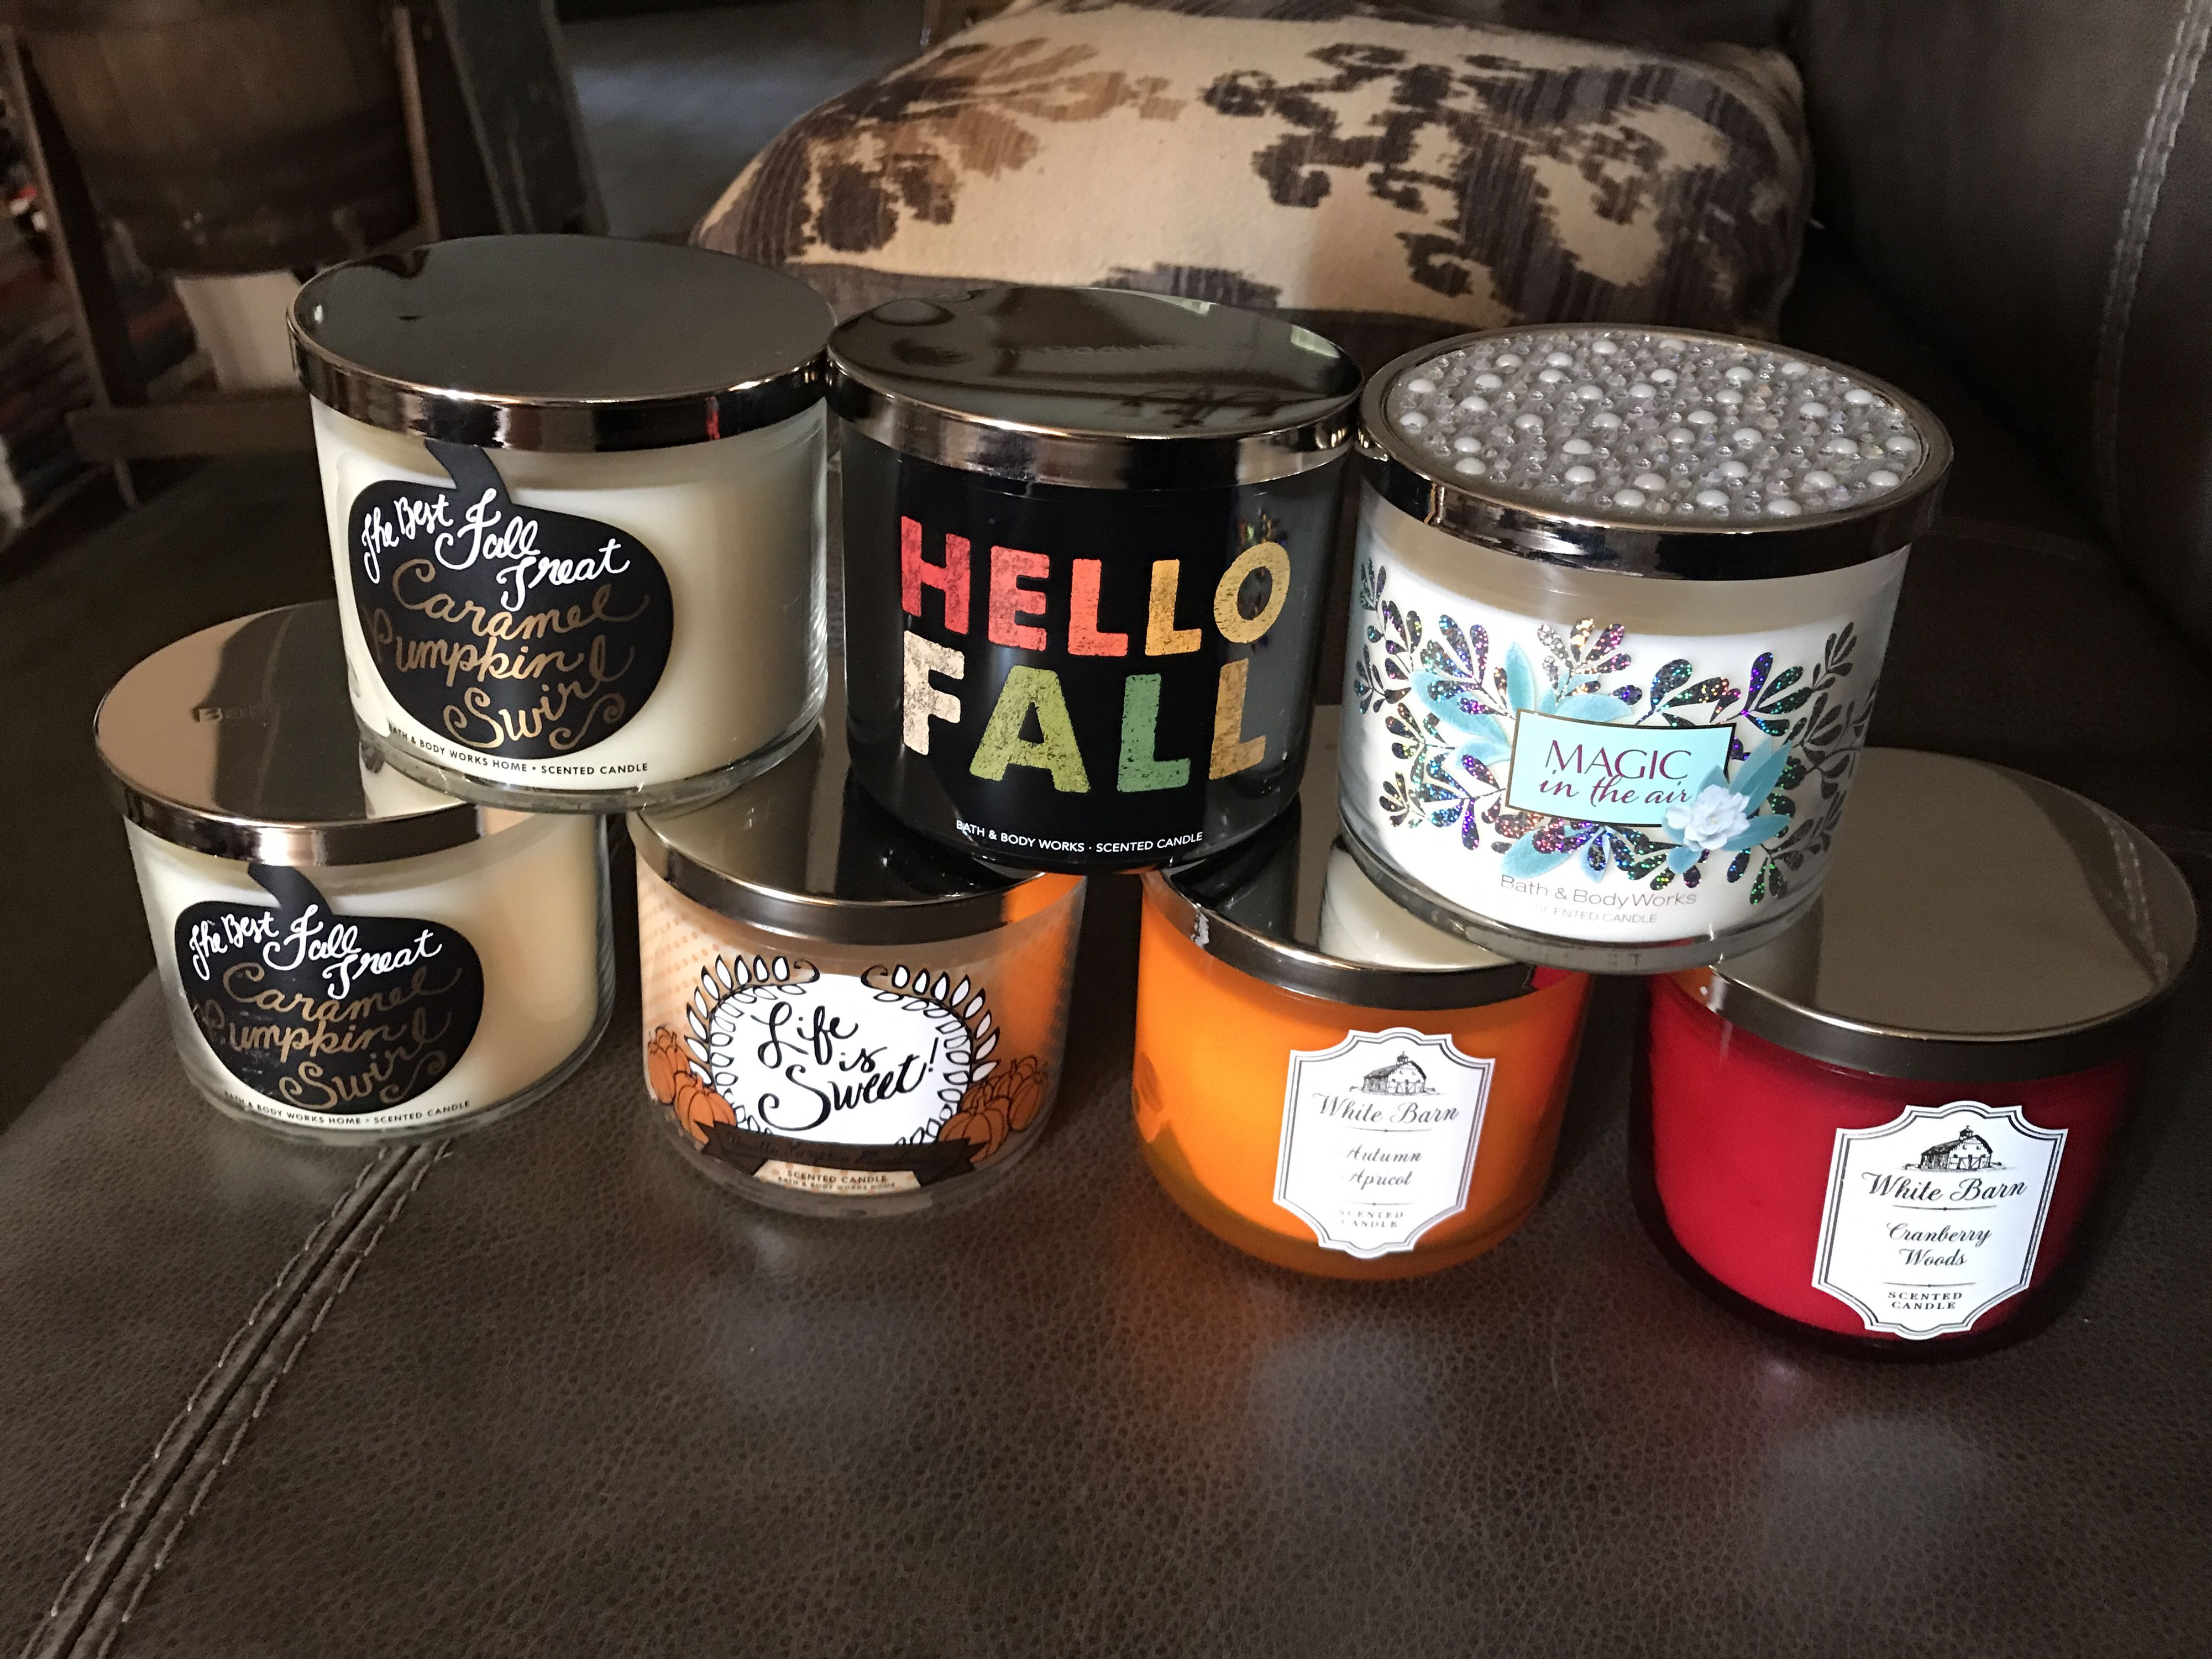 New bath and body candles